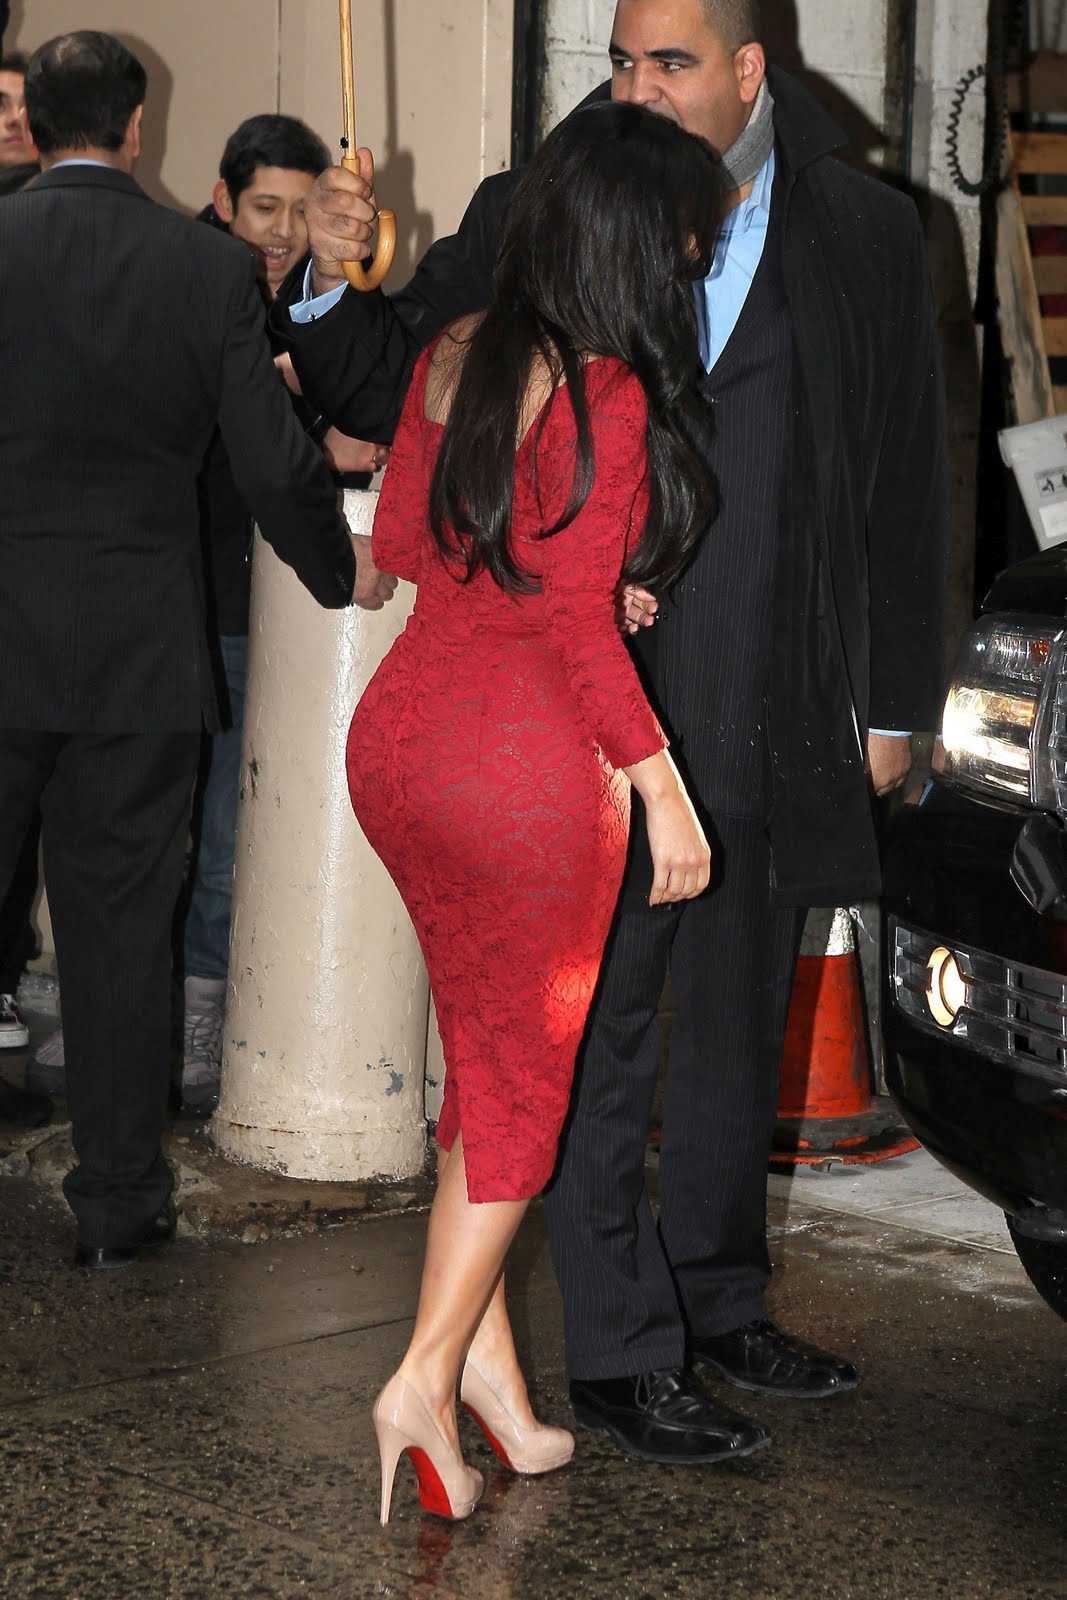 Kim kardashian in red dress